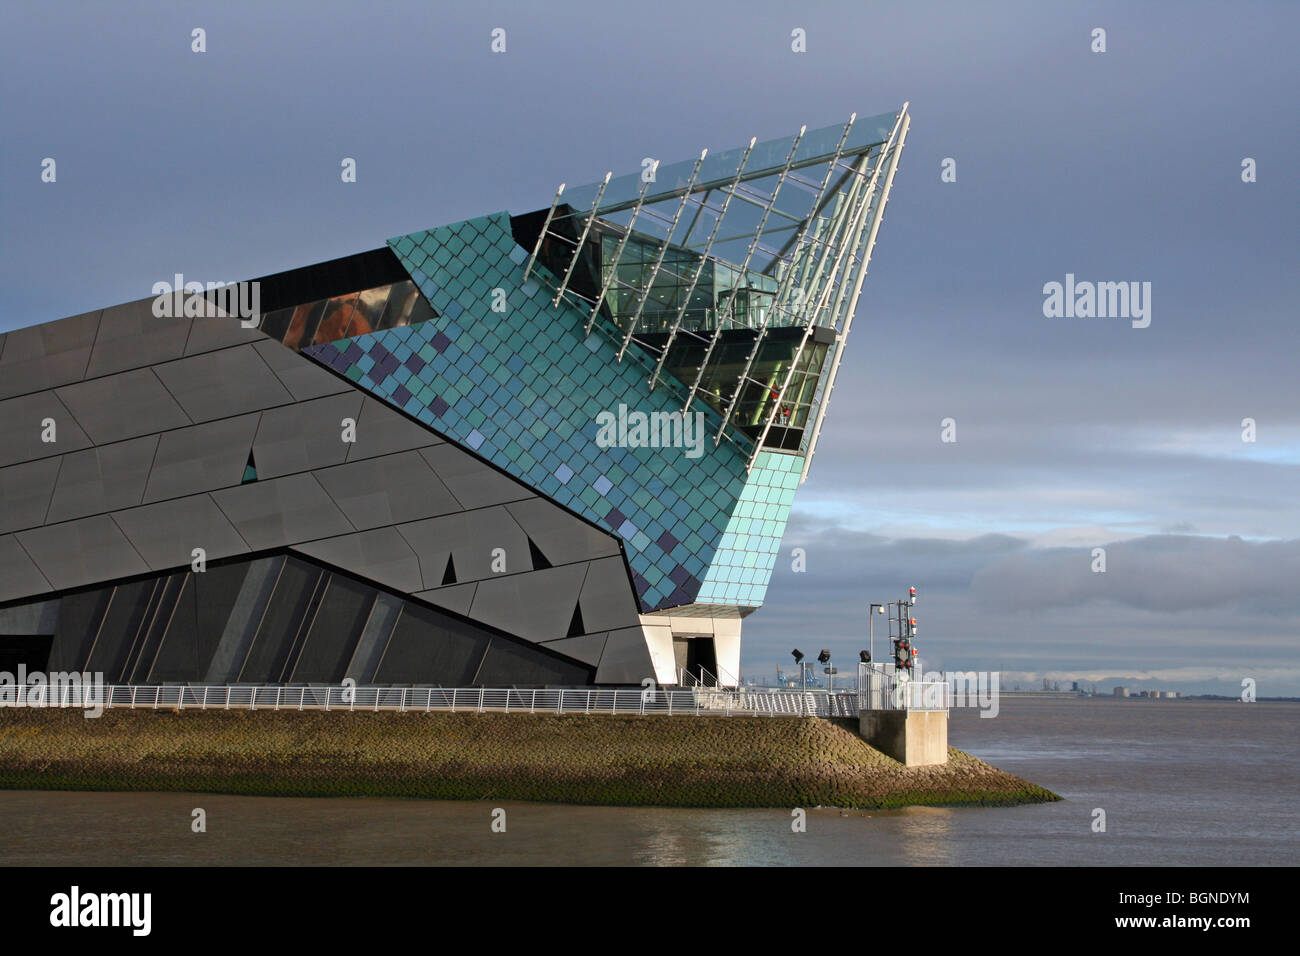 The Deep Aquarium in Hull, East Riding Of Yorkshire, UK - Stock Image